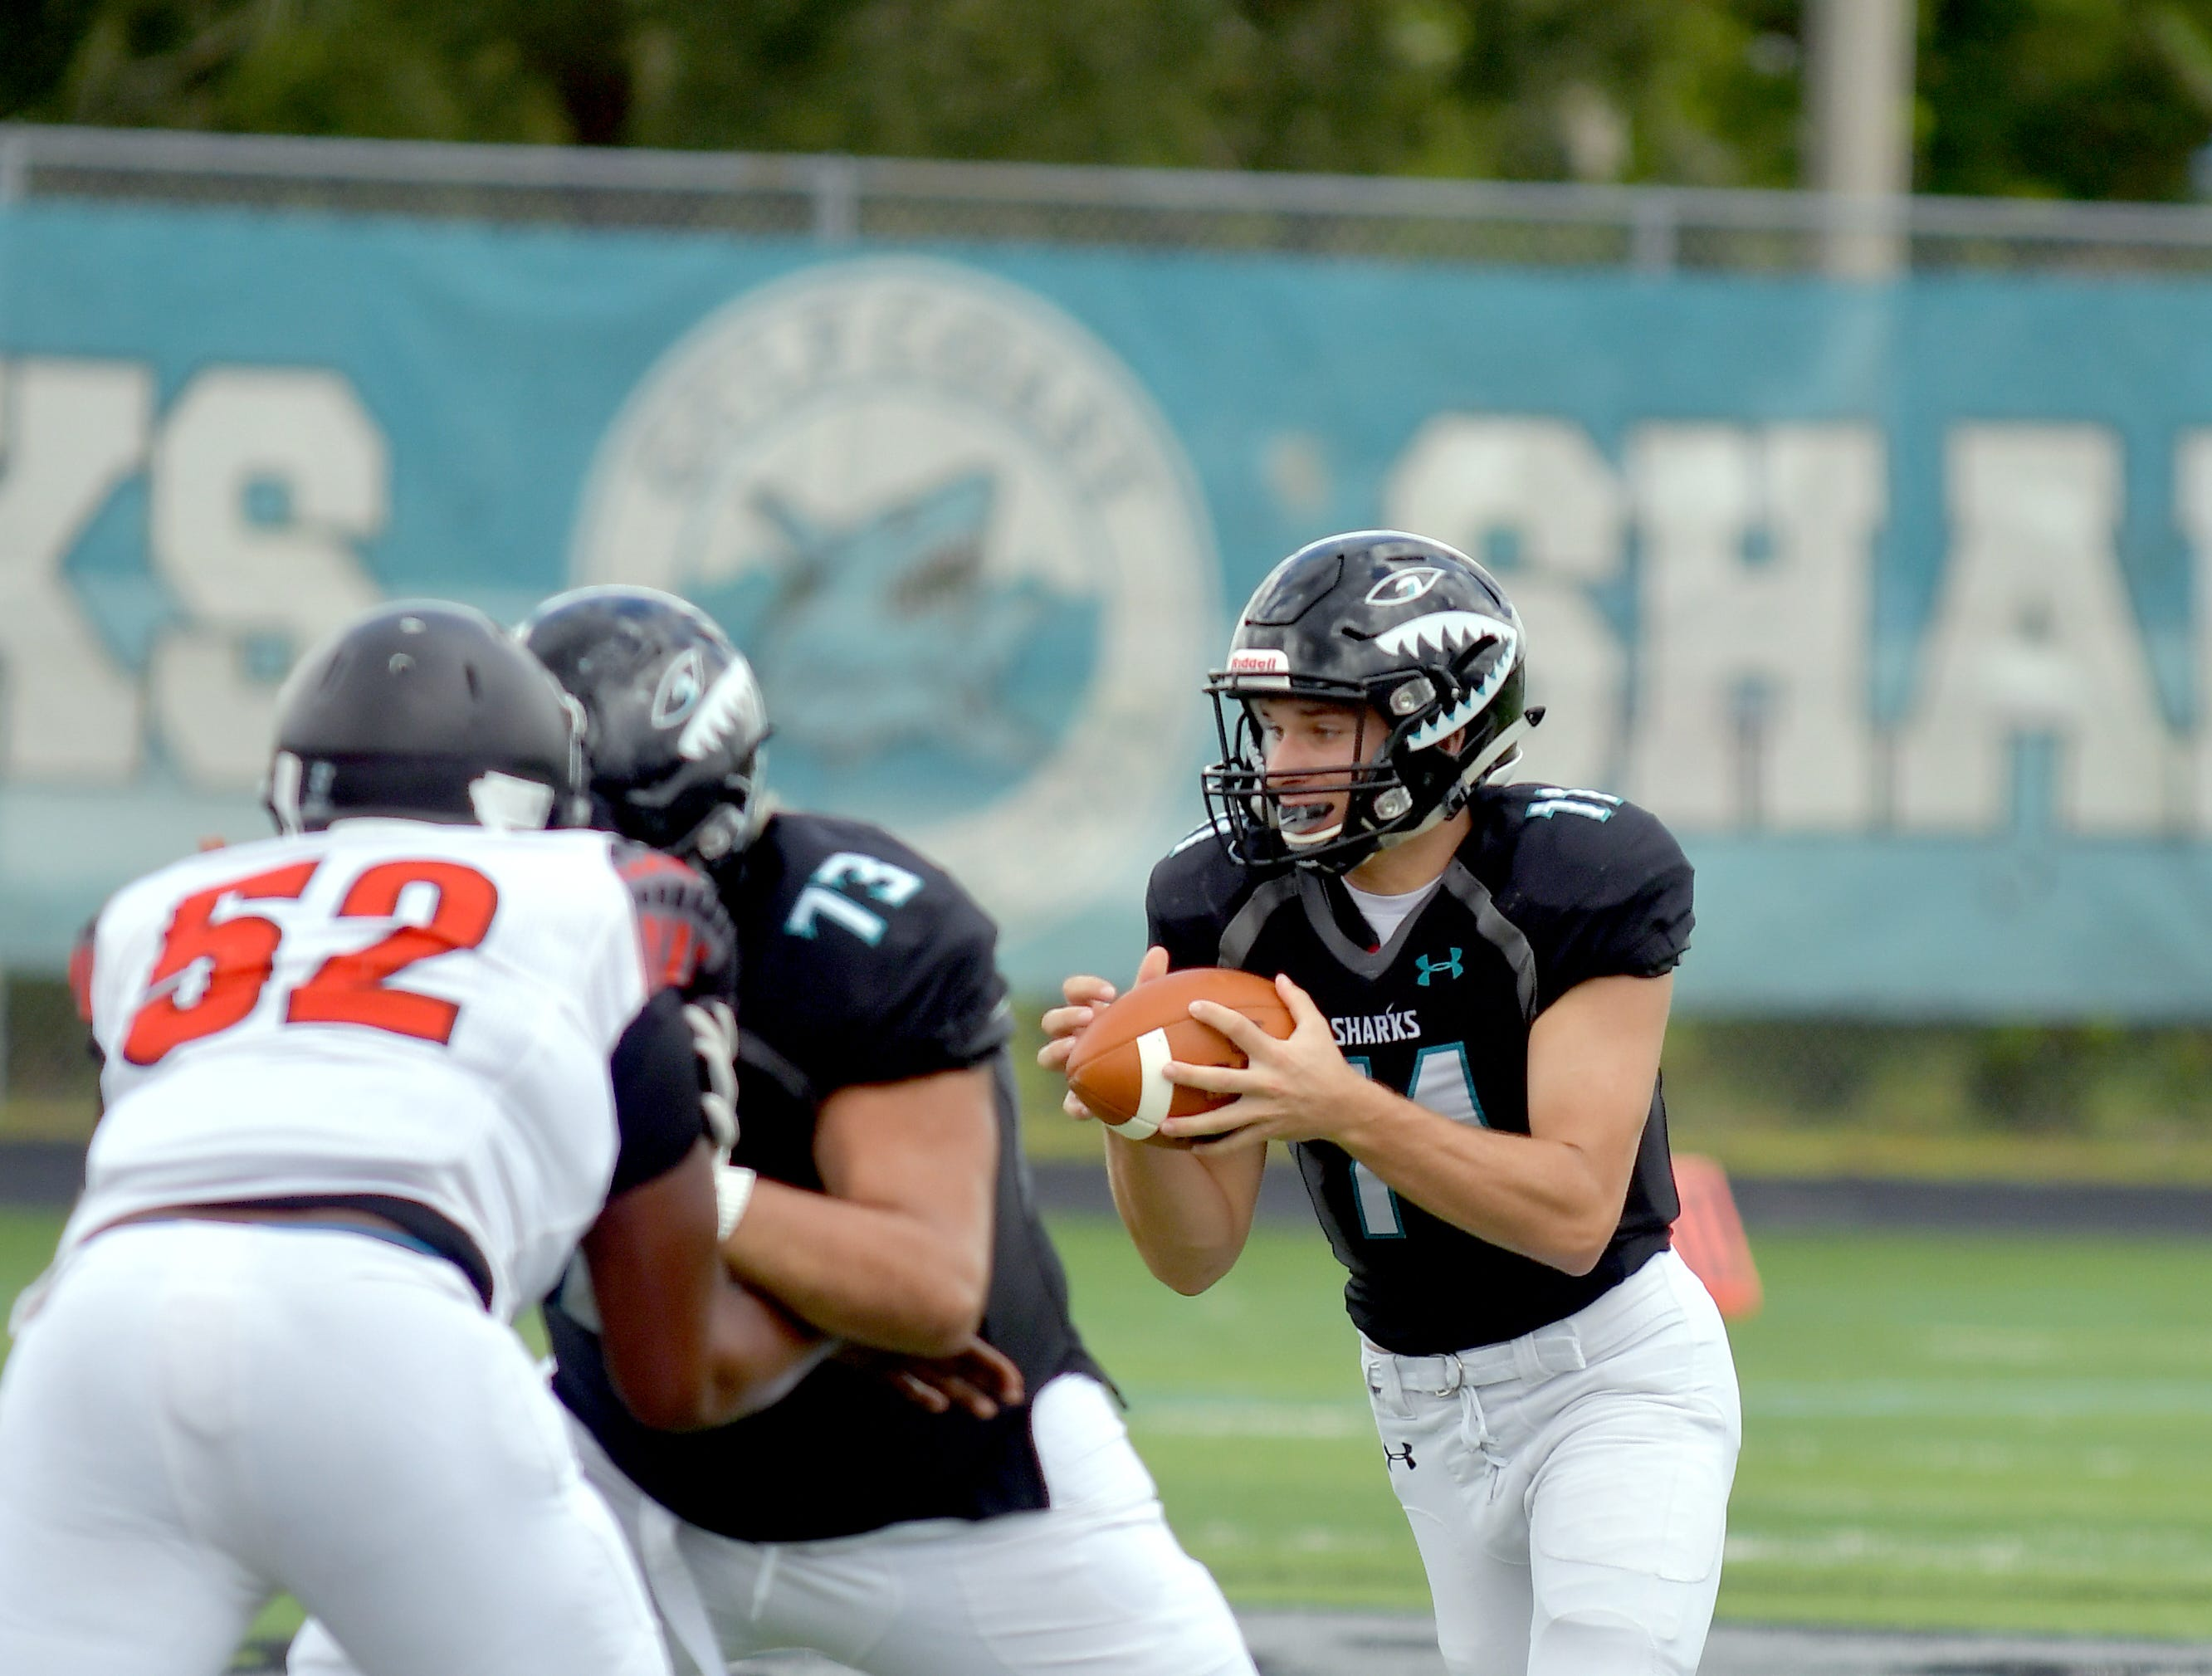 Gulf Coast High School quarterback Bryce St. Amand (14) during their game with Lely High School in Naples on Saturday, Aug. 25, 2018.